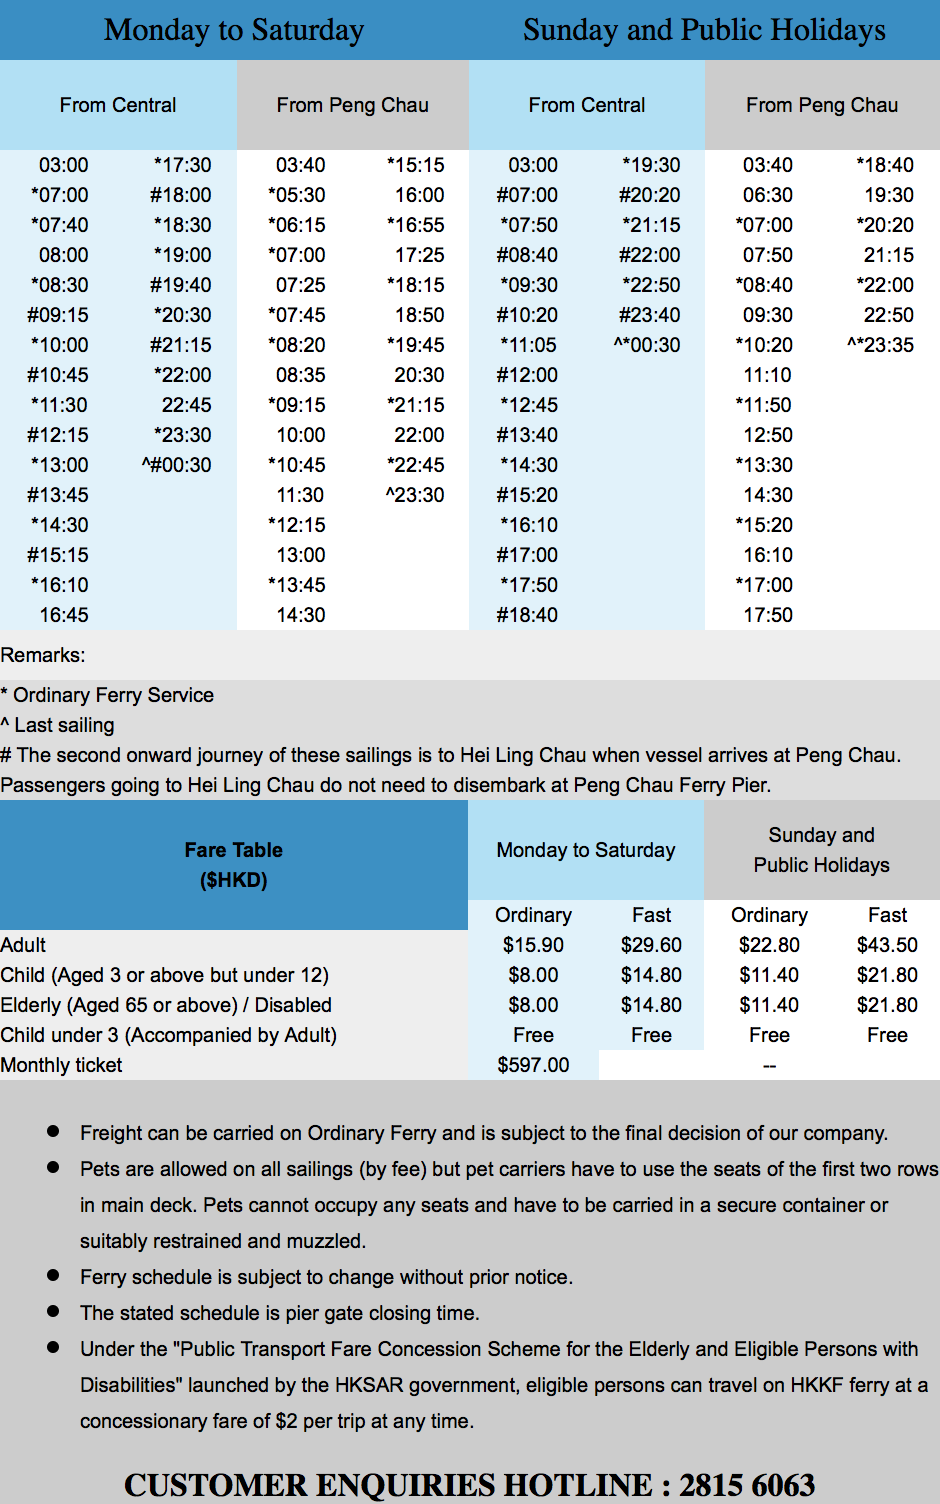 CENTRAL - PENG CHAU FERRY SCHEDULE